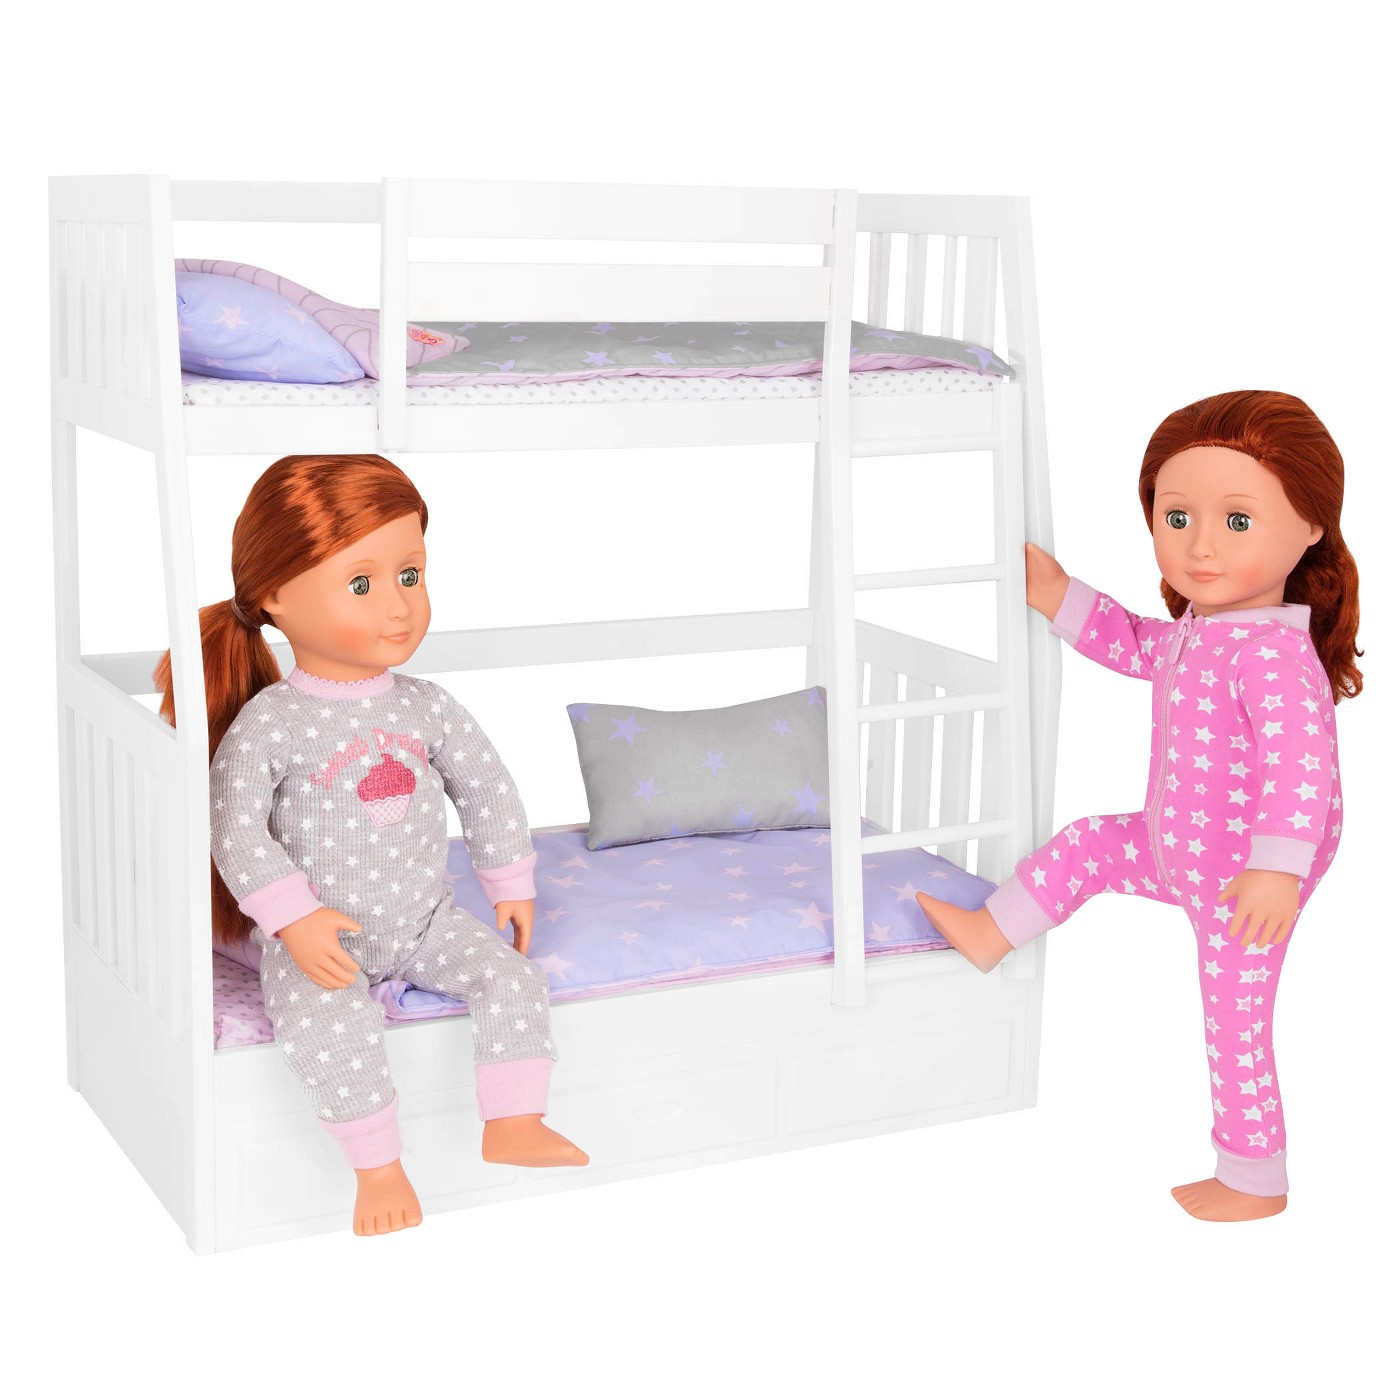 "Our Generation Dream Bunks - Bunk Beds for 18"" Dolls - image 3 of 4"